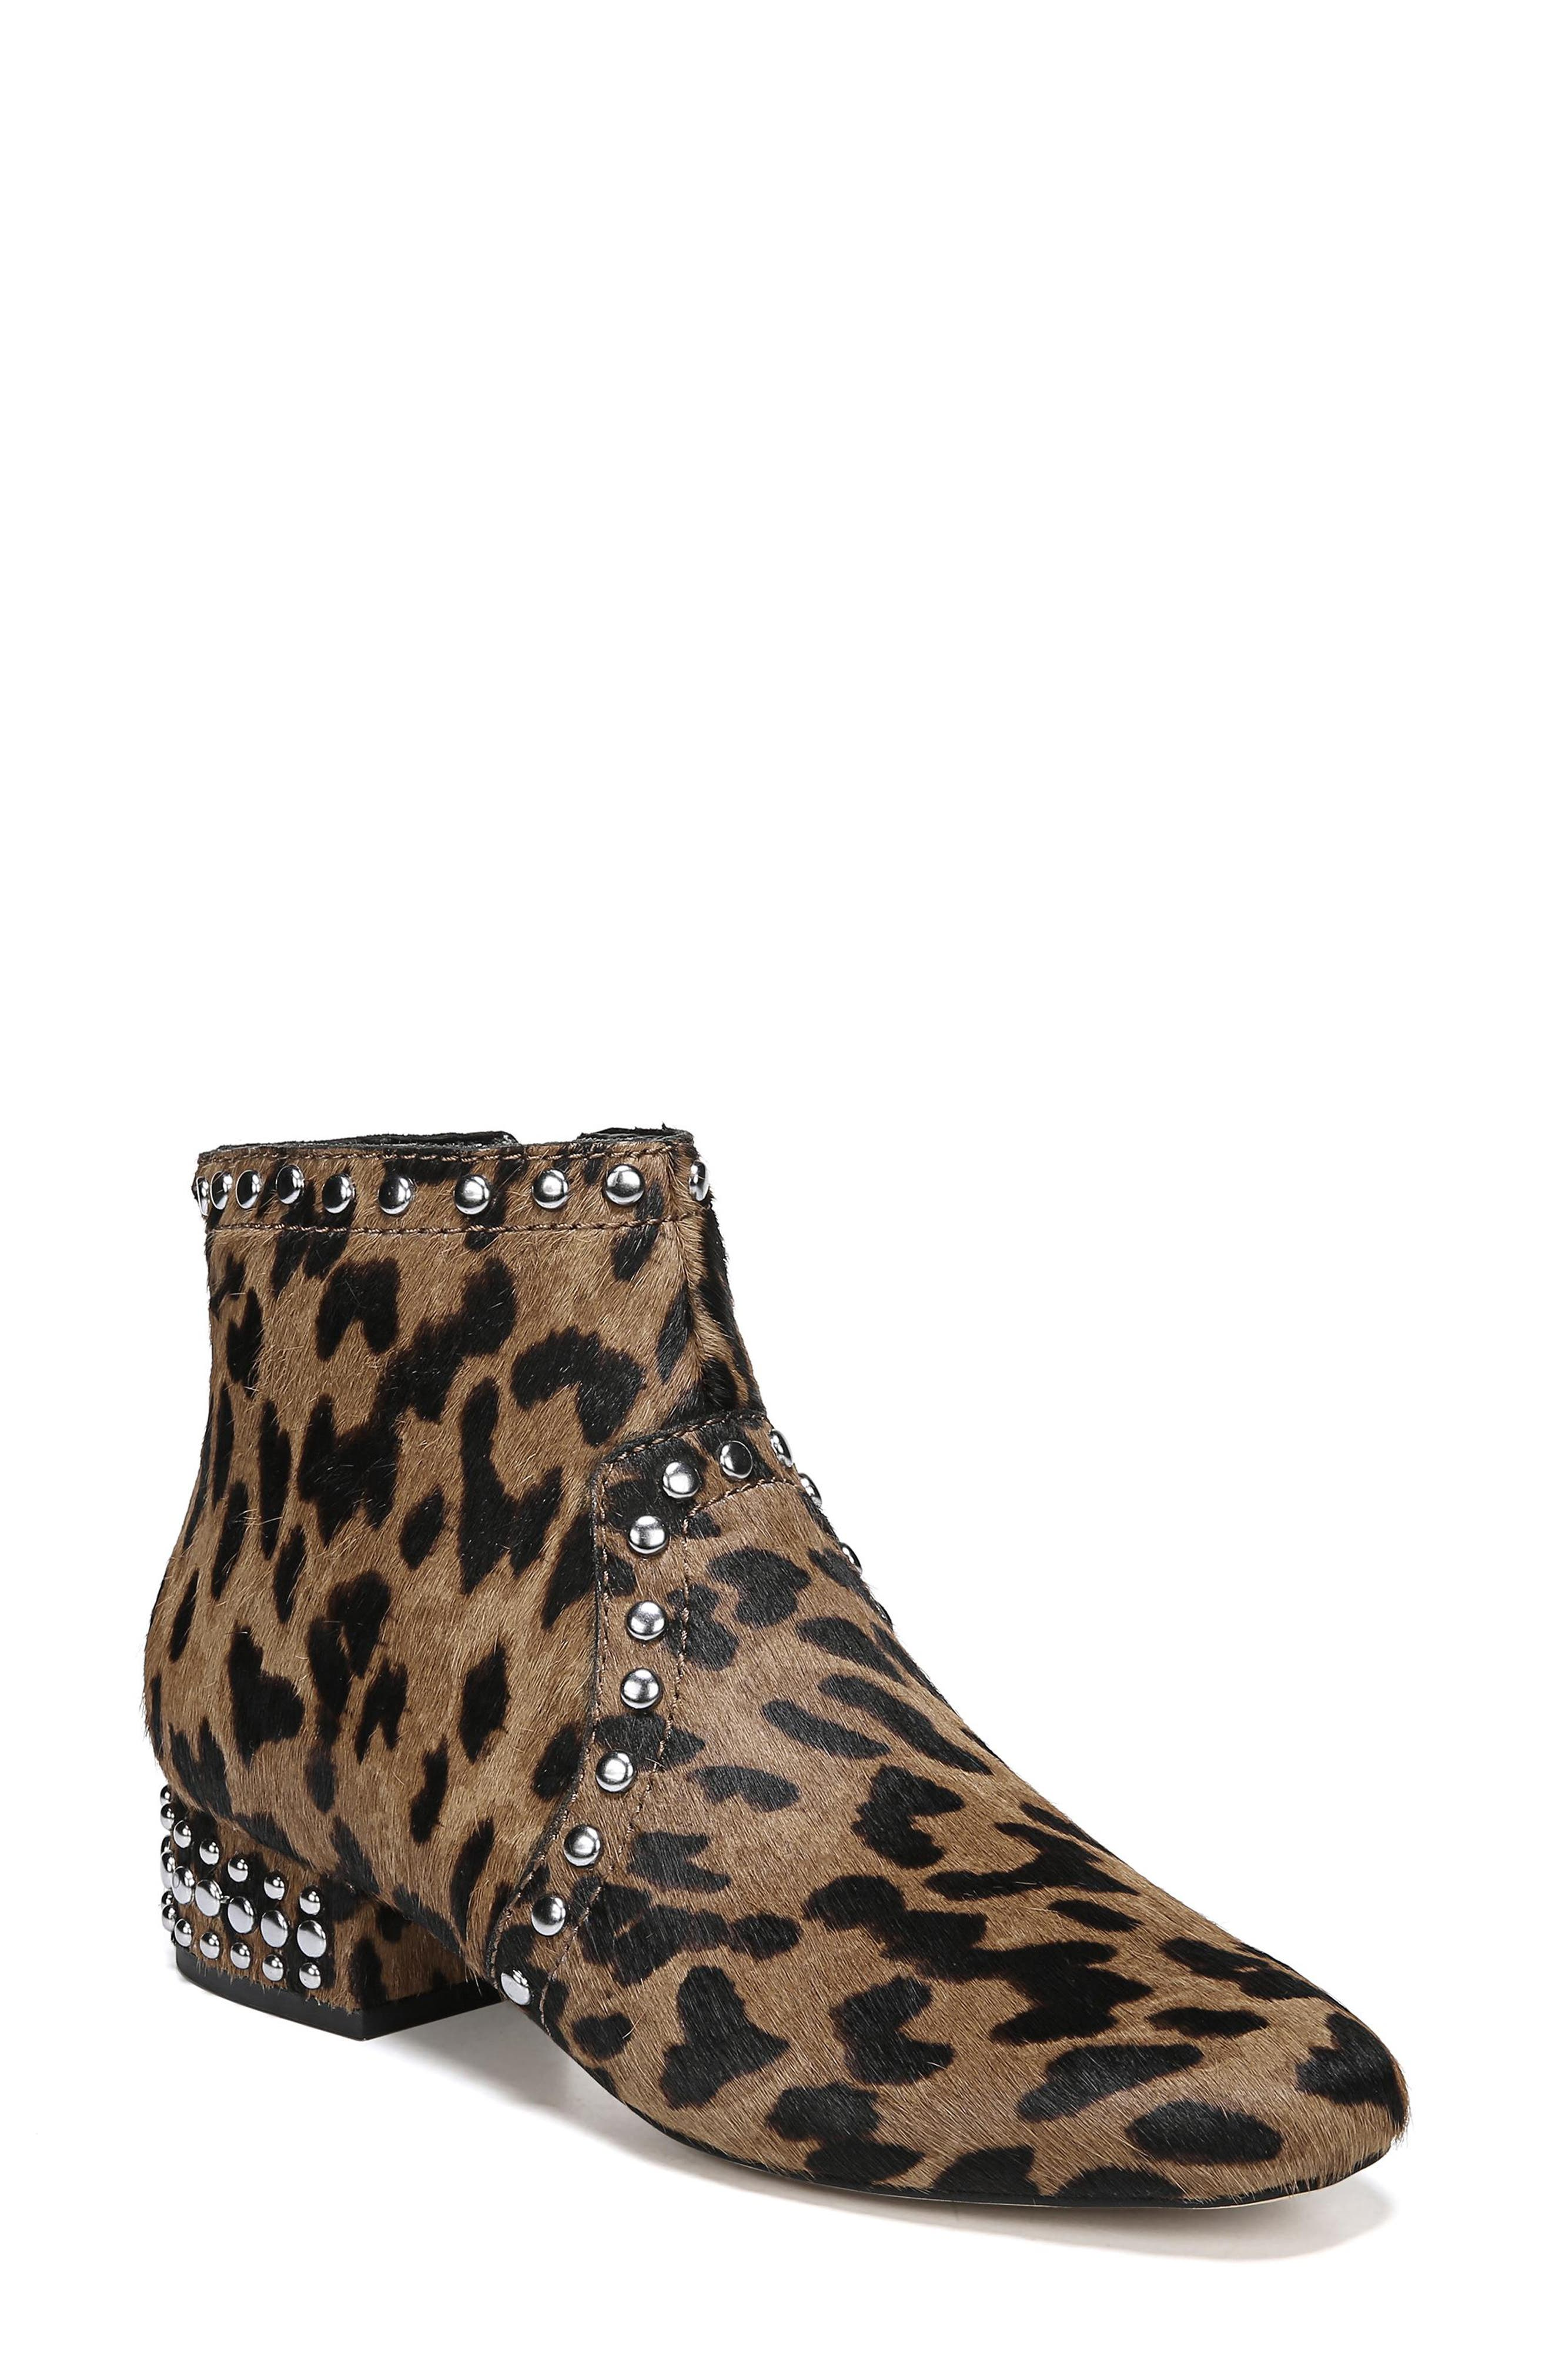 Sam Edelman Lorin Genuine Calf Hair Studded Bootie